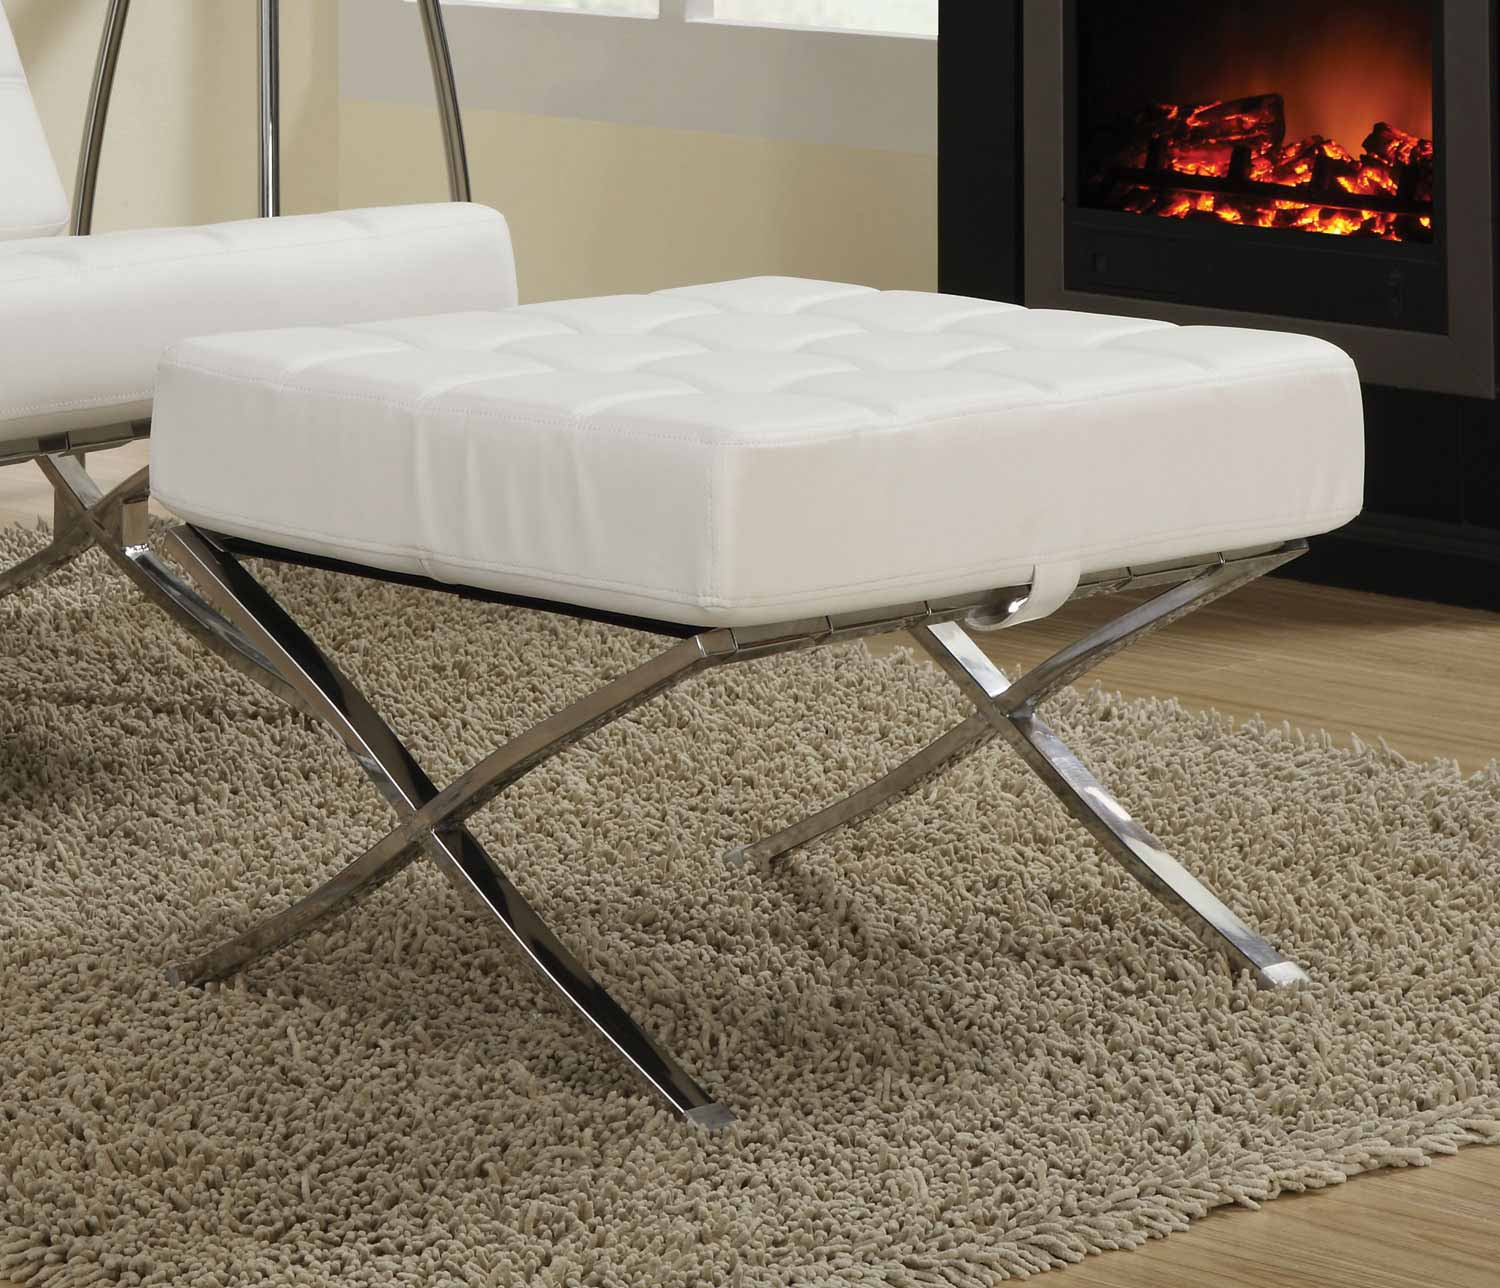 Coaster 902183 Accent Chair White Chrome 902183 At